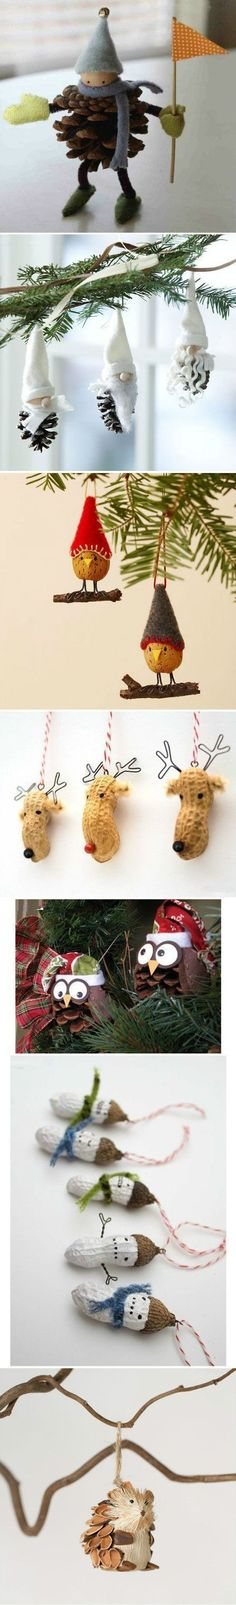 23 Super Simple and Crazy Cute DIY Christmas Decoration Ideas